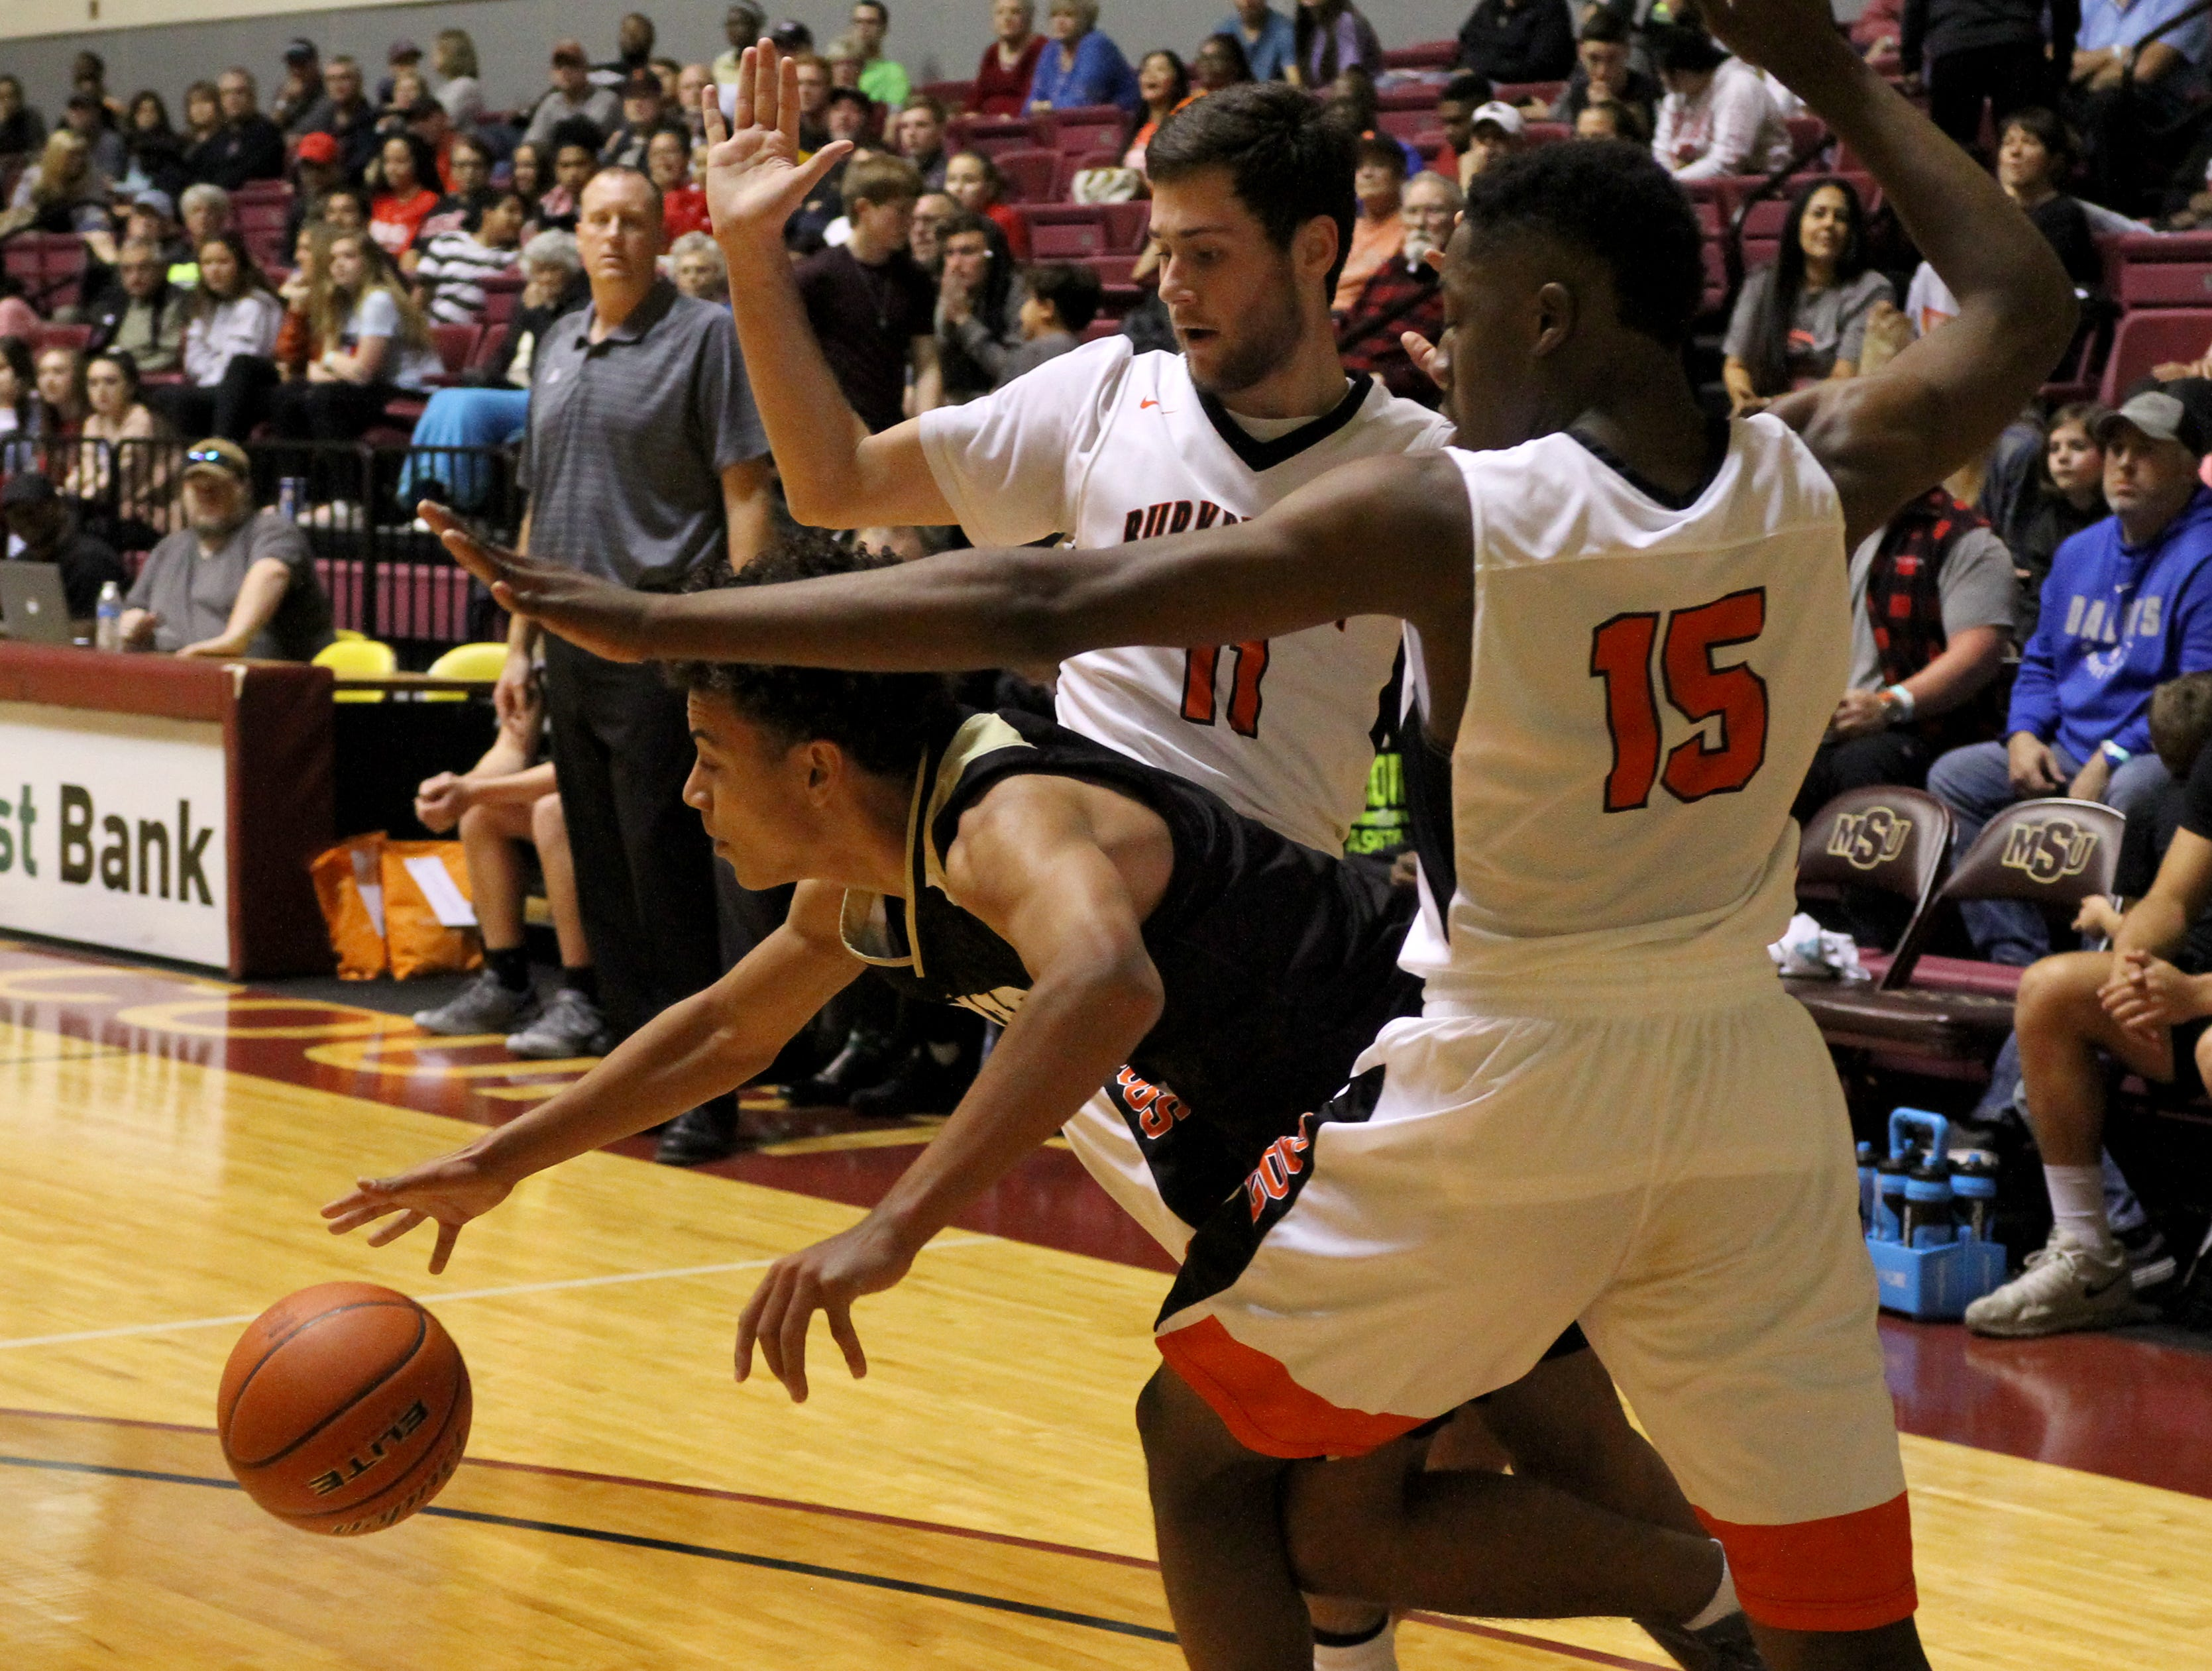 Rider's Kellar Owens gets away from Burkburnett's Gavin Morris (11) and Doriean Smith (15) but losses the ball in the Wichita Falls Classic Saturday, Dec. 1, 2018, in D.L. Ligon Coliseum at Midwestern State University.